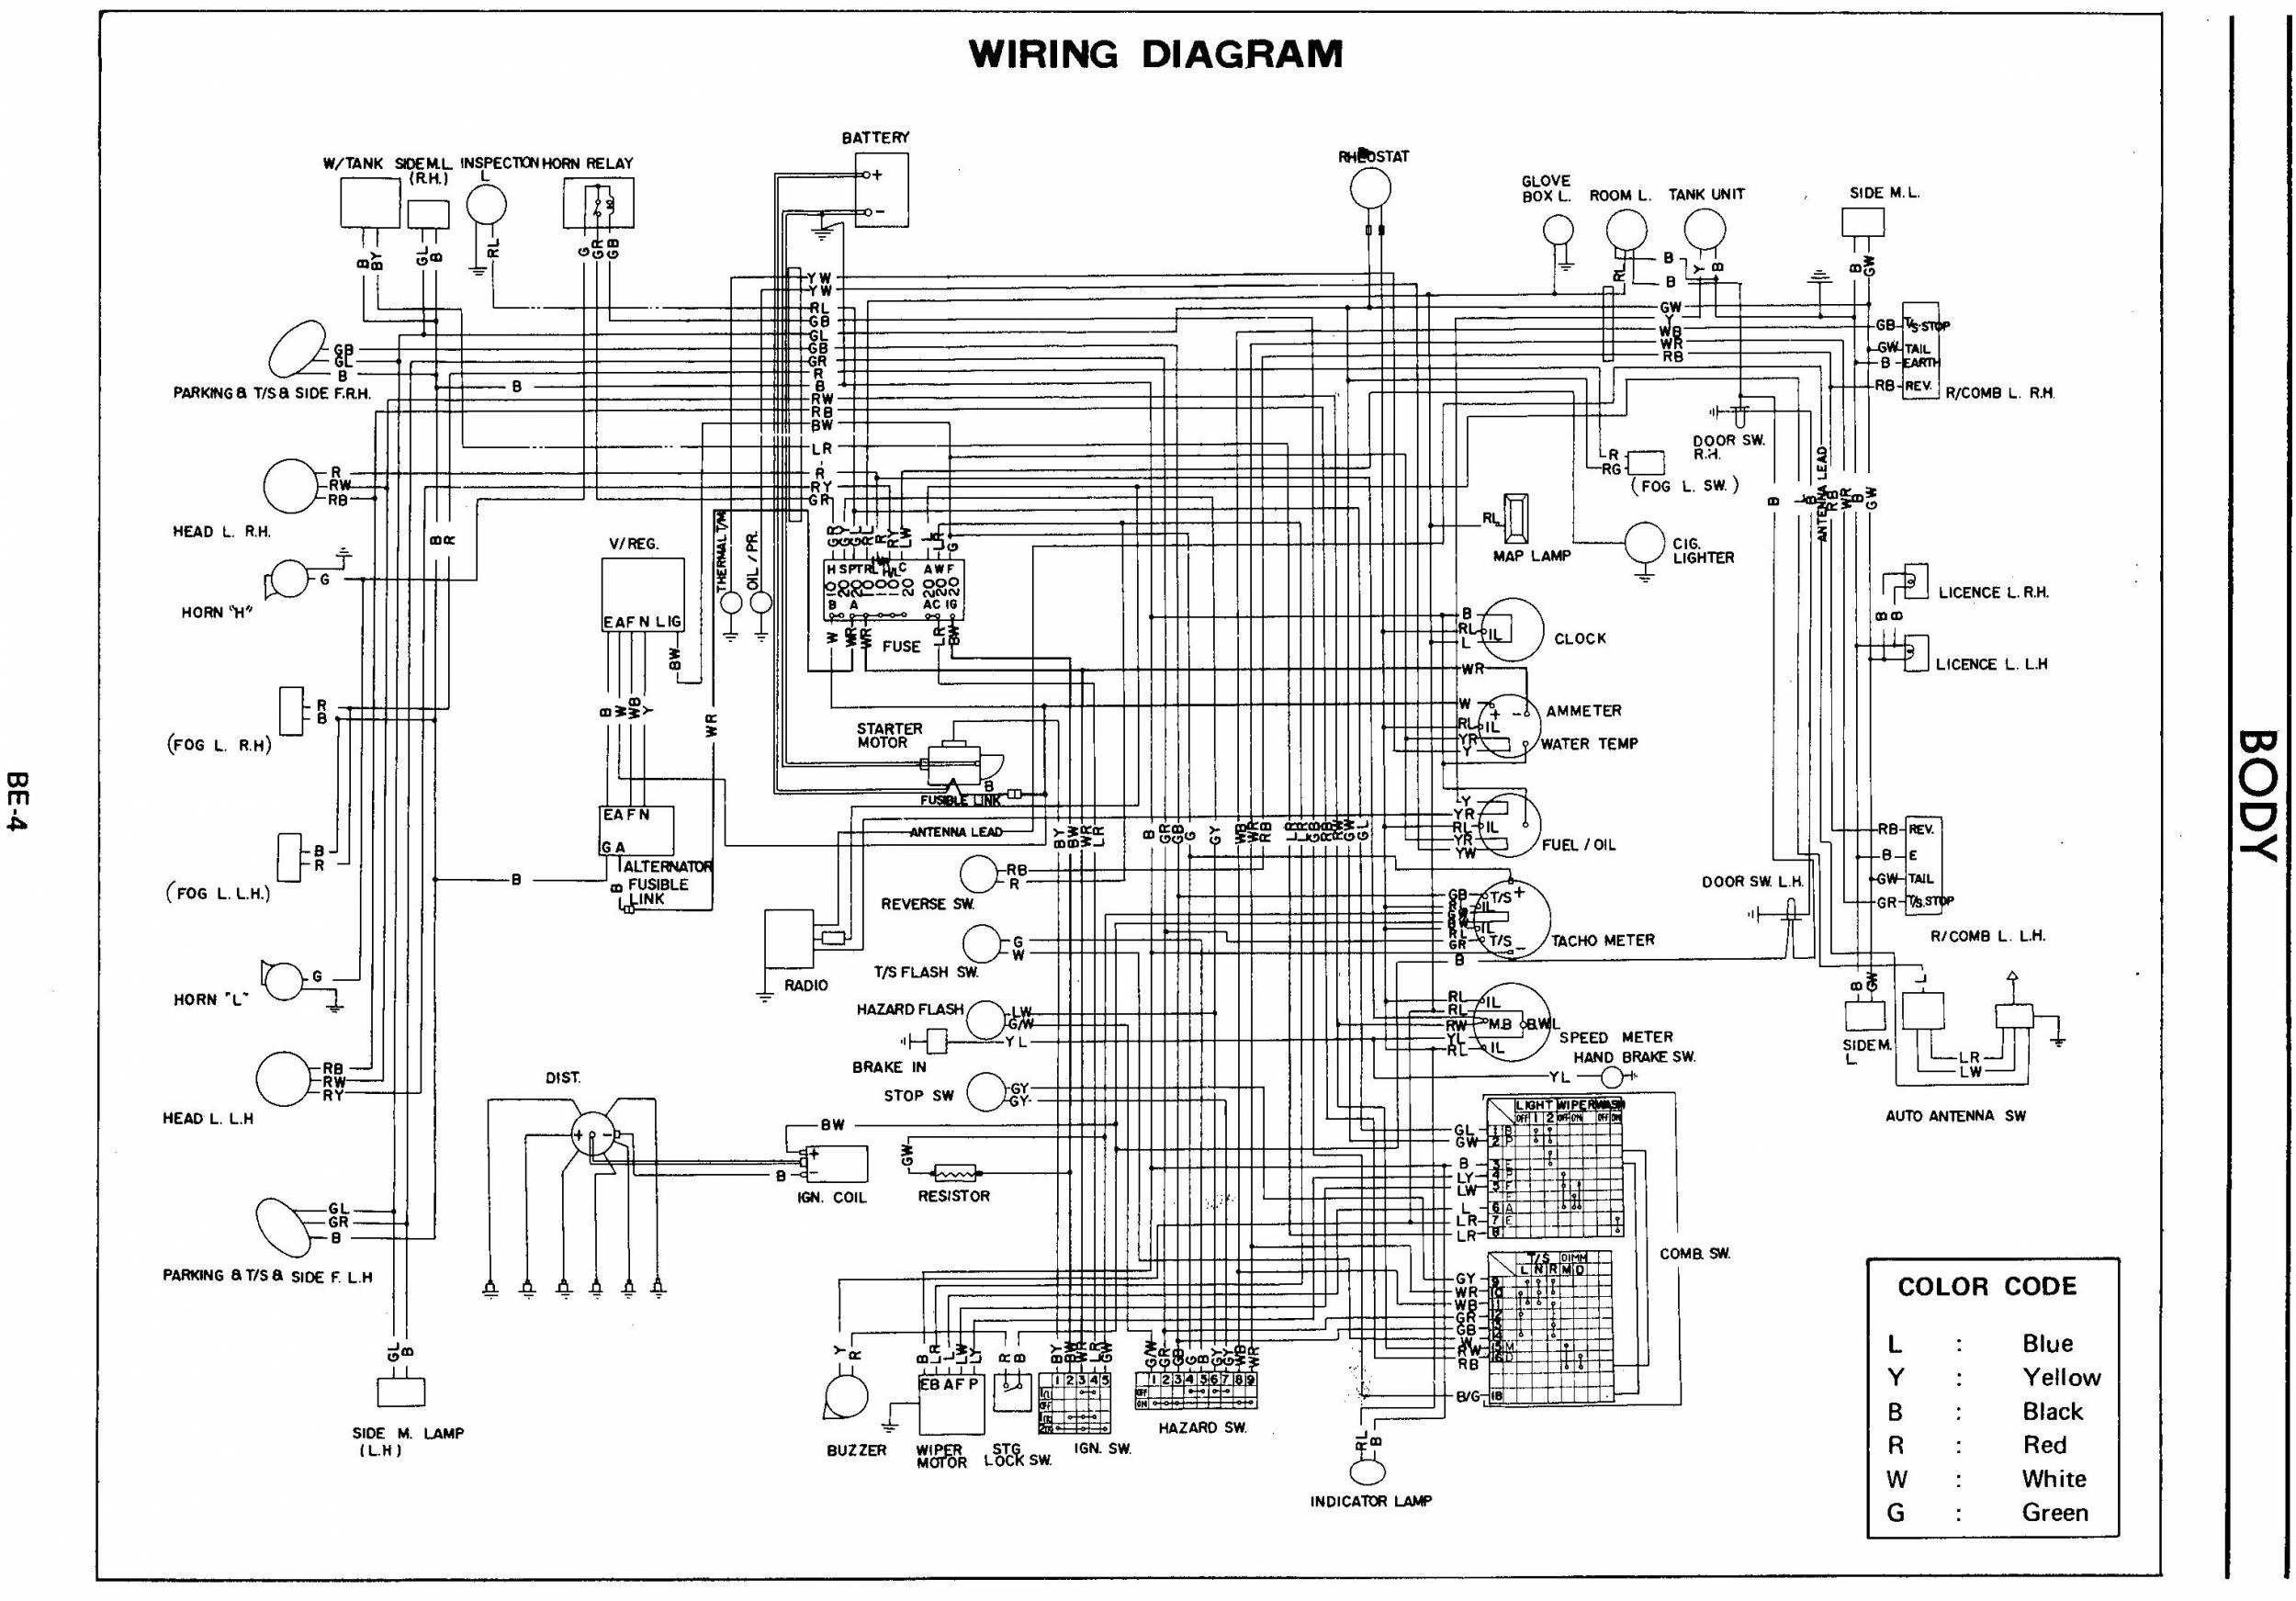 mercedes benz wiring diagram Collection-Mercedes Alternator Wiring Diagram Fresh Mercedes Benz Wiring Diagram Free Free Image Wiring Diagram Engine 8-n